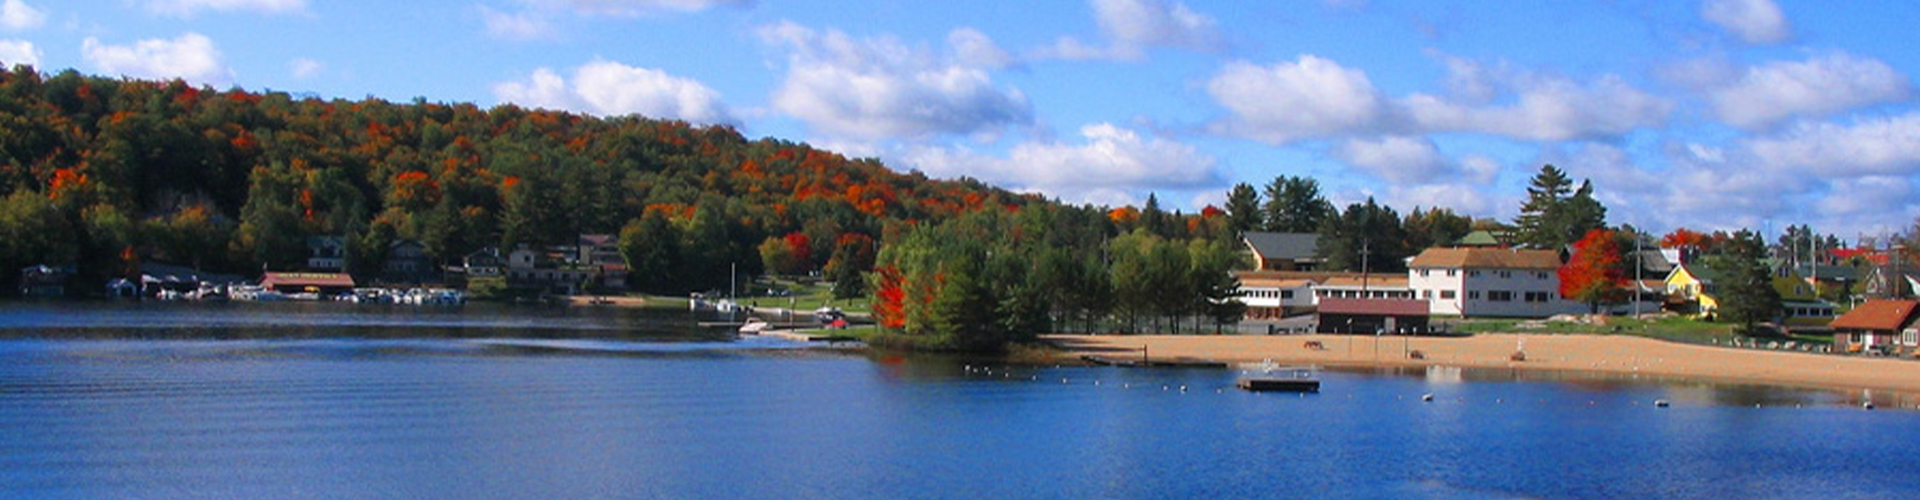 View from the docks of the blue lake and the tree line half green from pine trees and half red with fall foliage